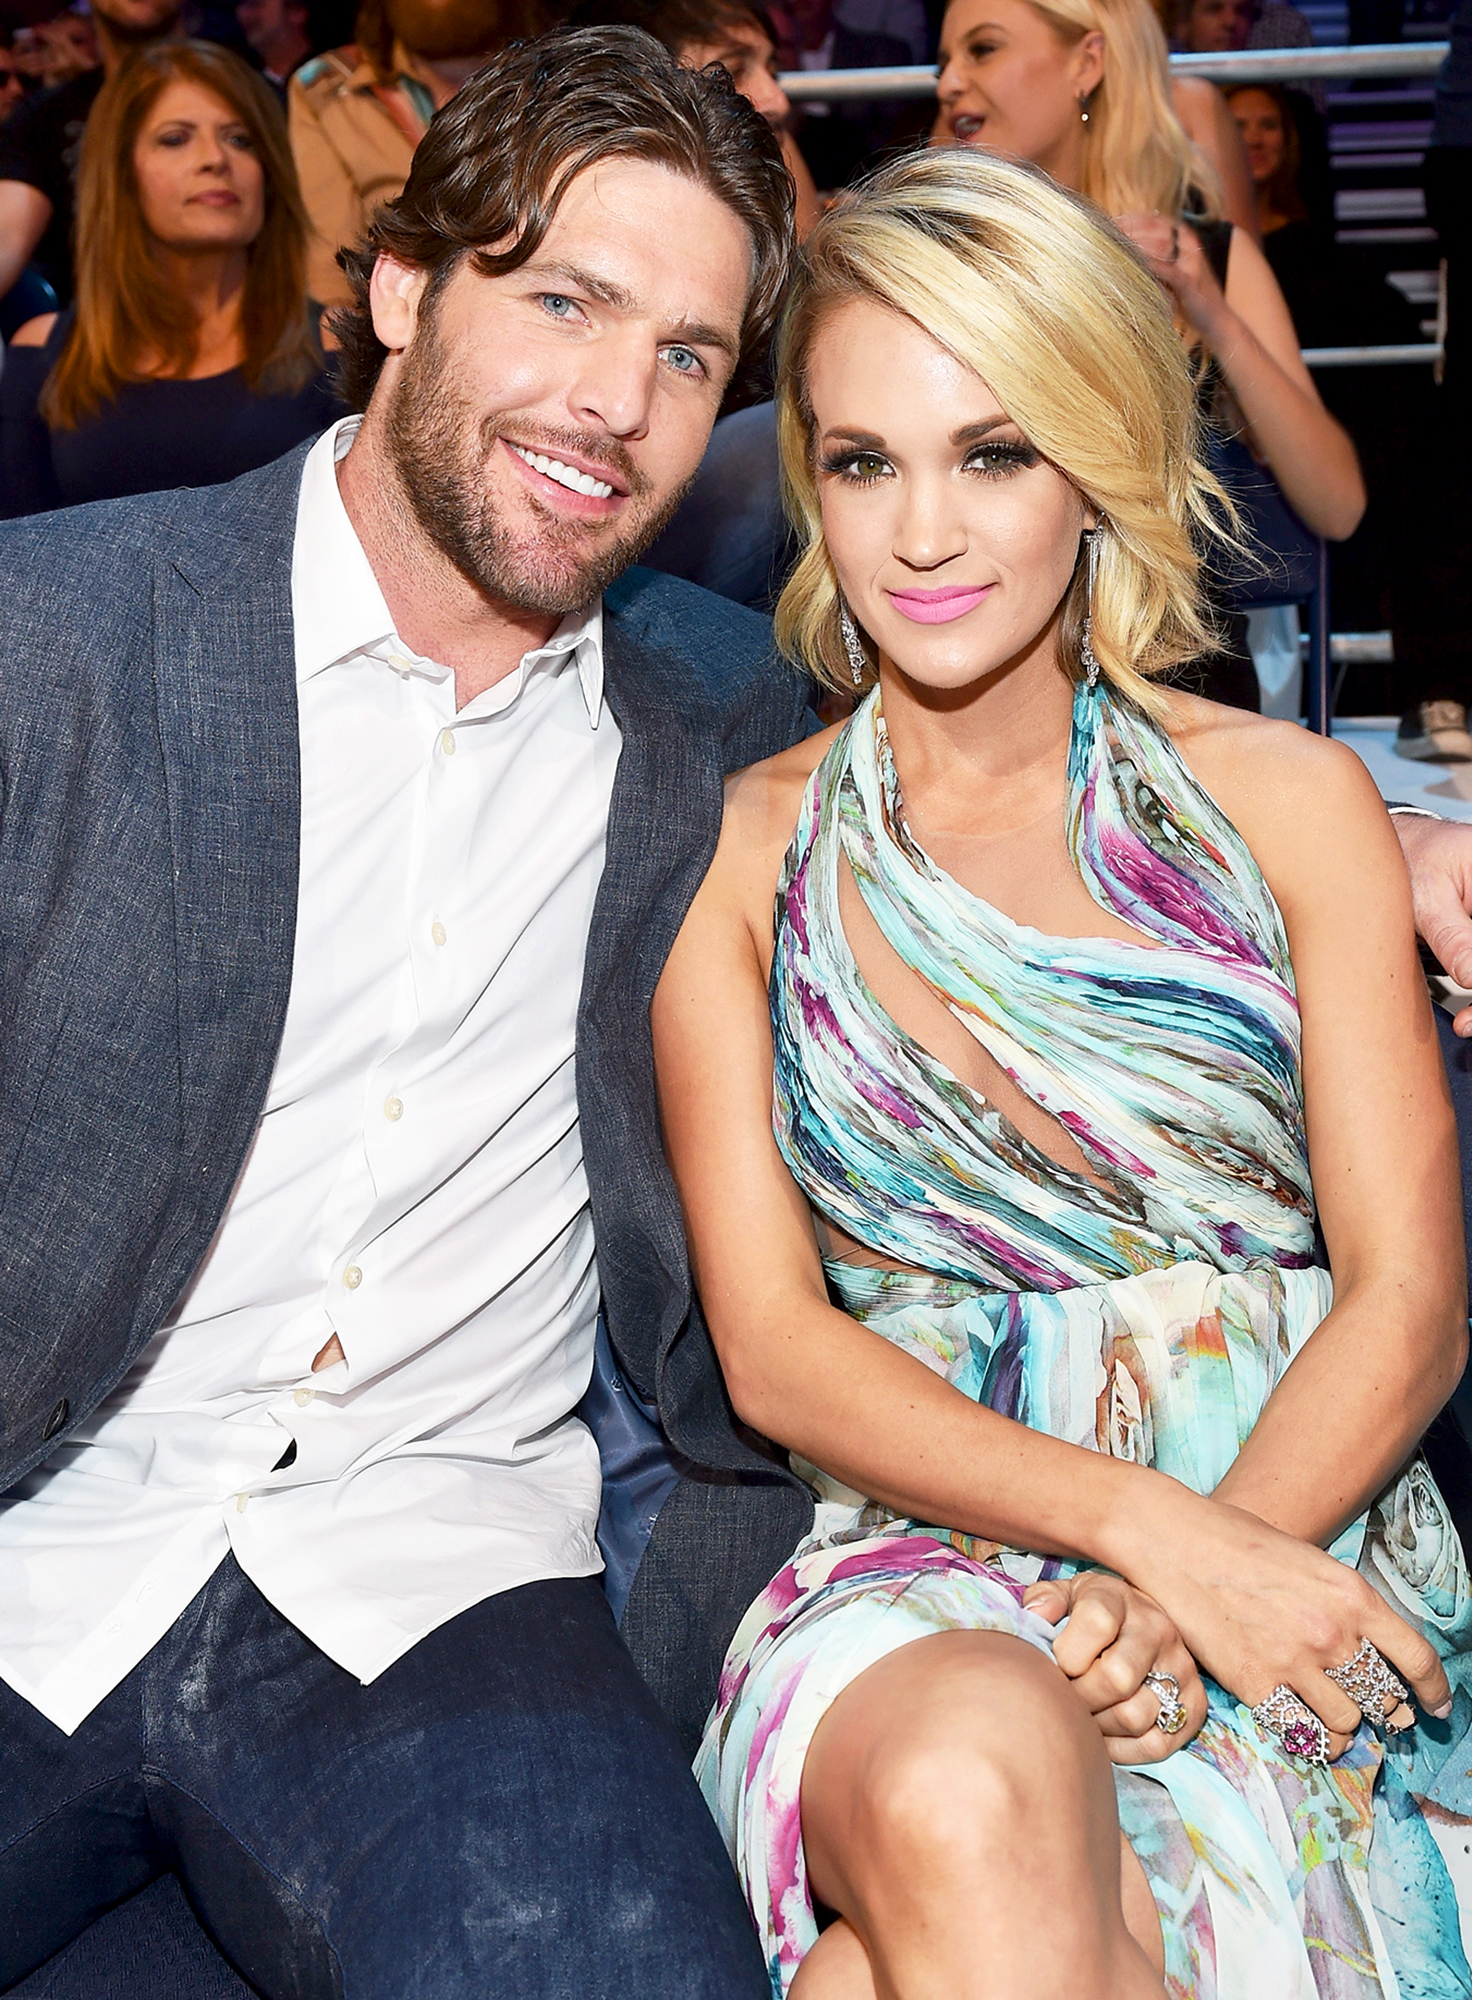 Who Was Carrie Underwood Dating In 2018